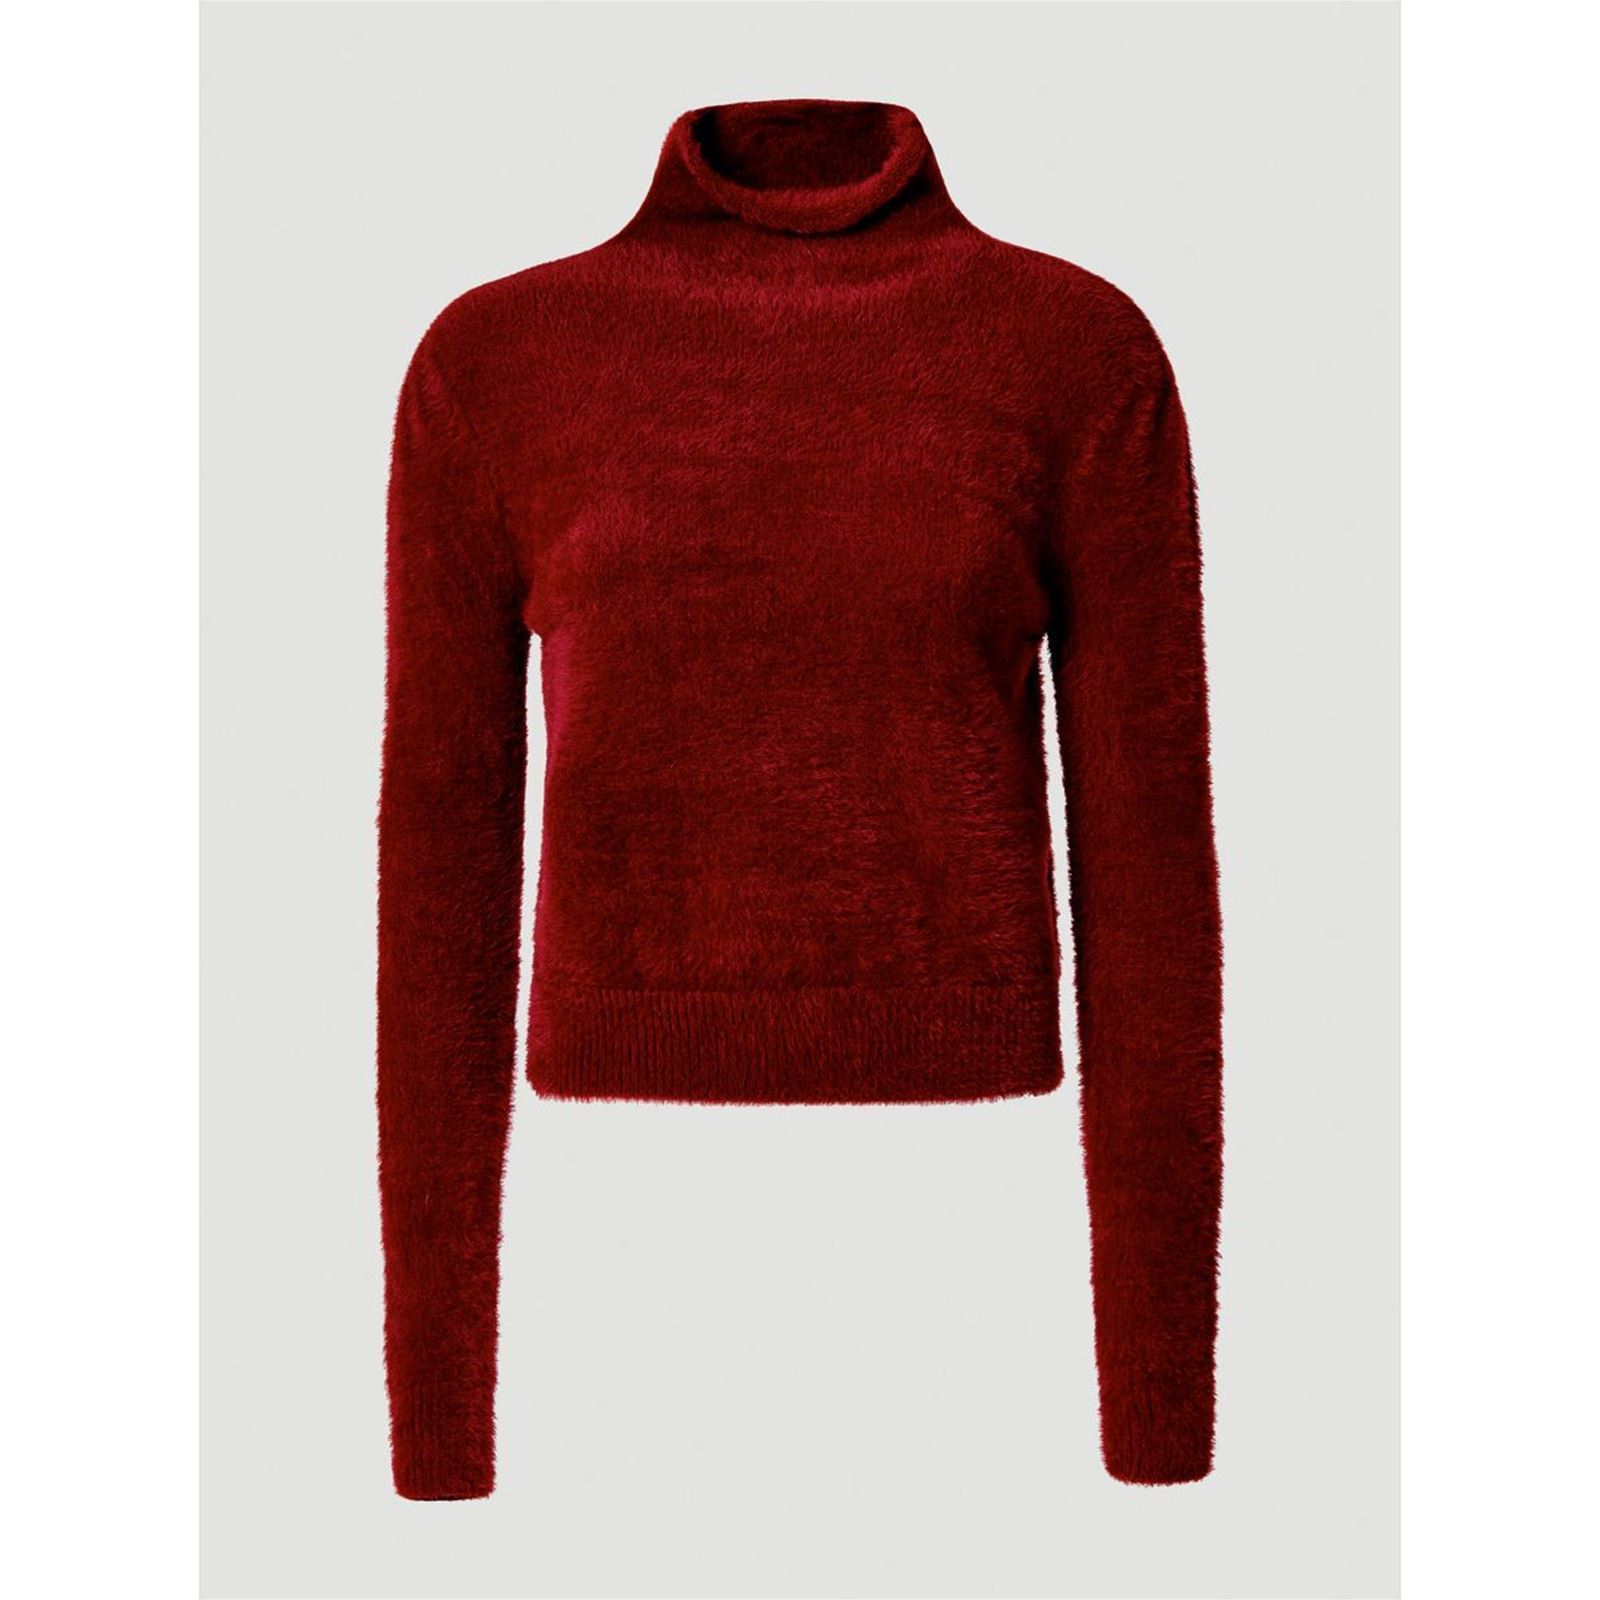 Guess Pull col roulé effet fourrure - rouge   BrandAlley 13737cba11c